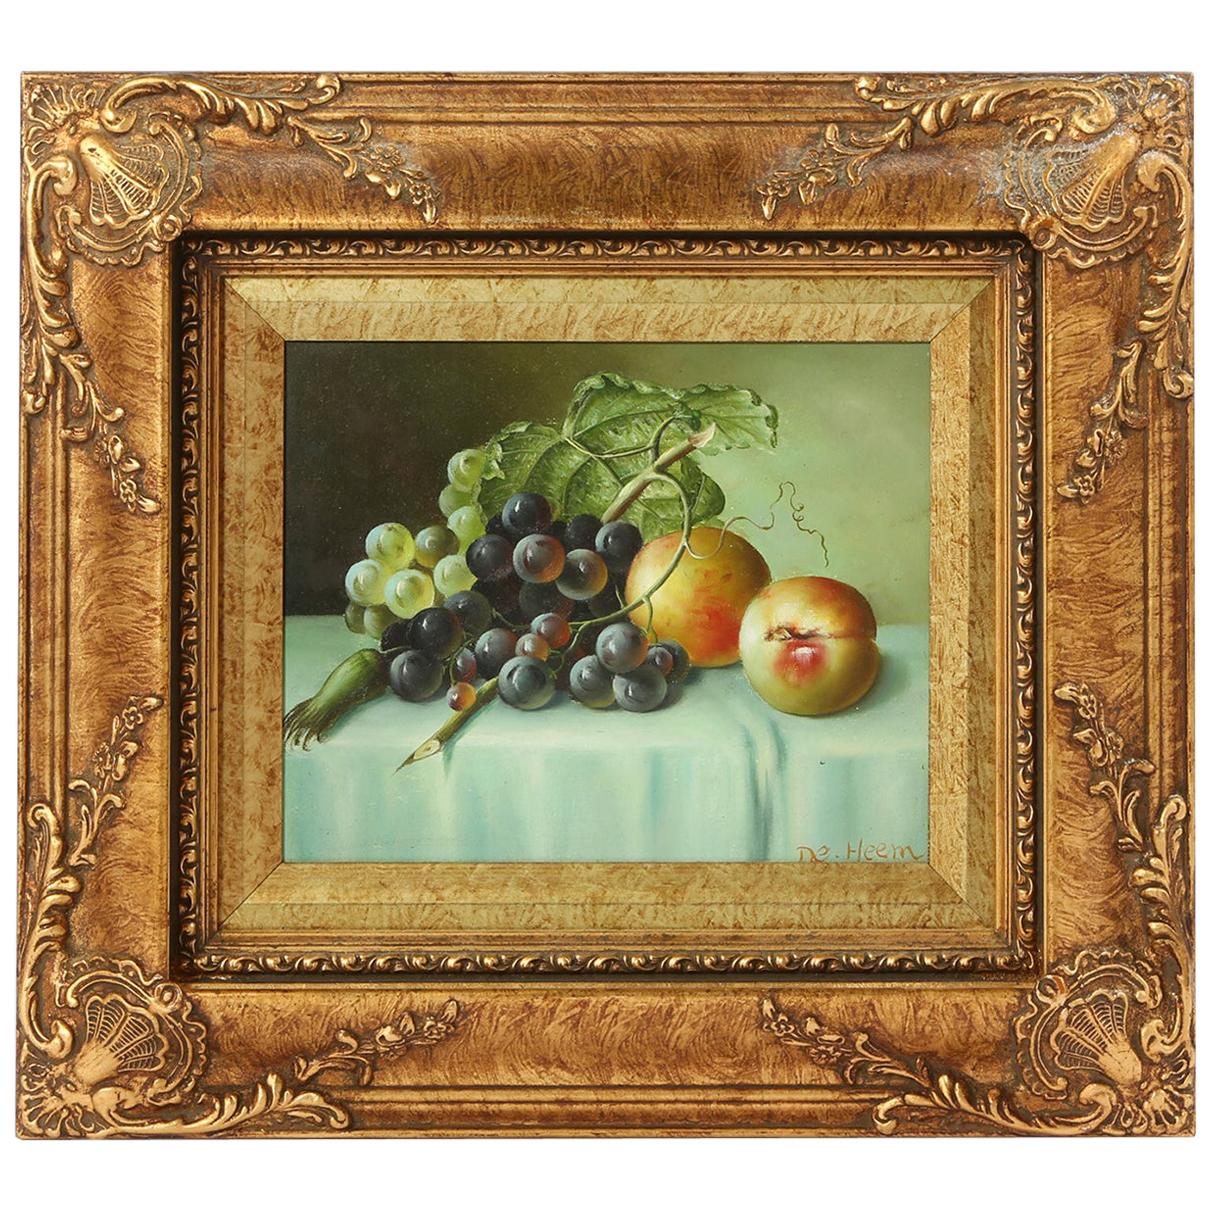 Giltwood Frame Oil on Canvas Painting